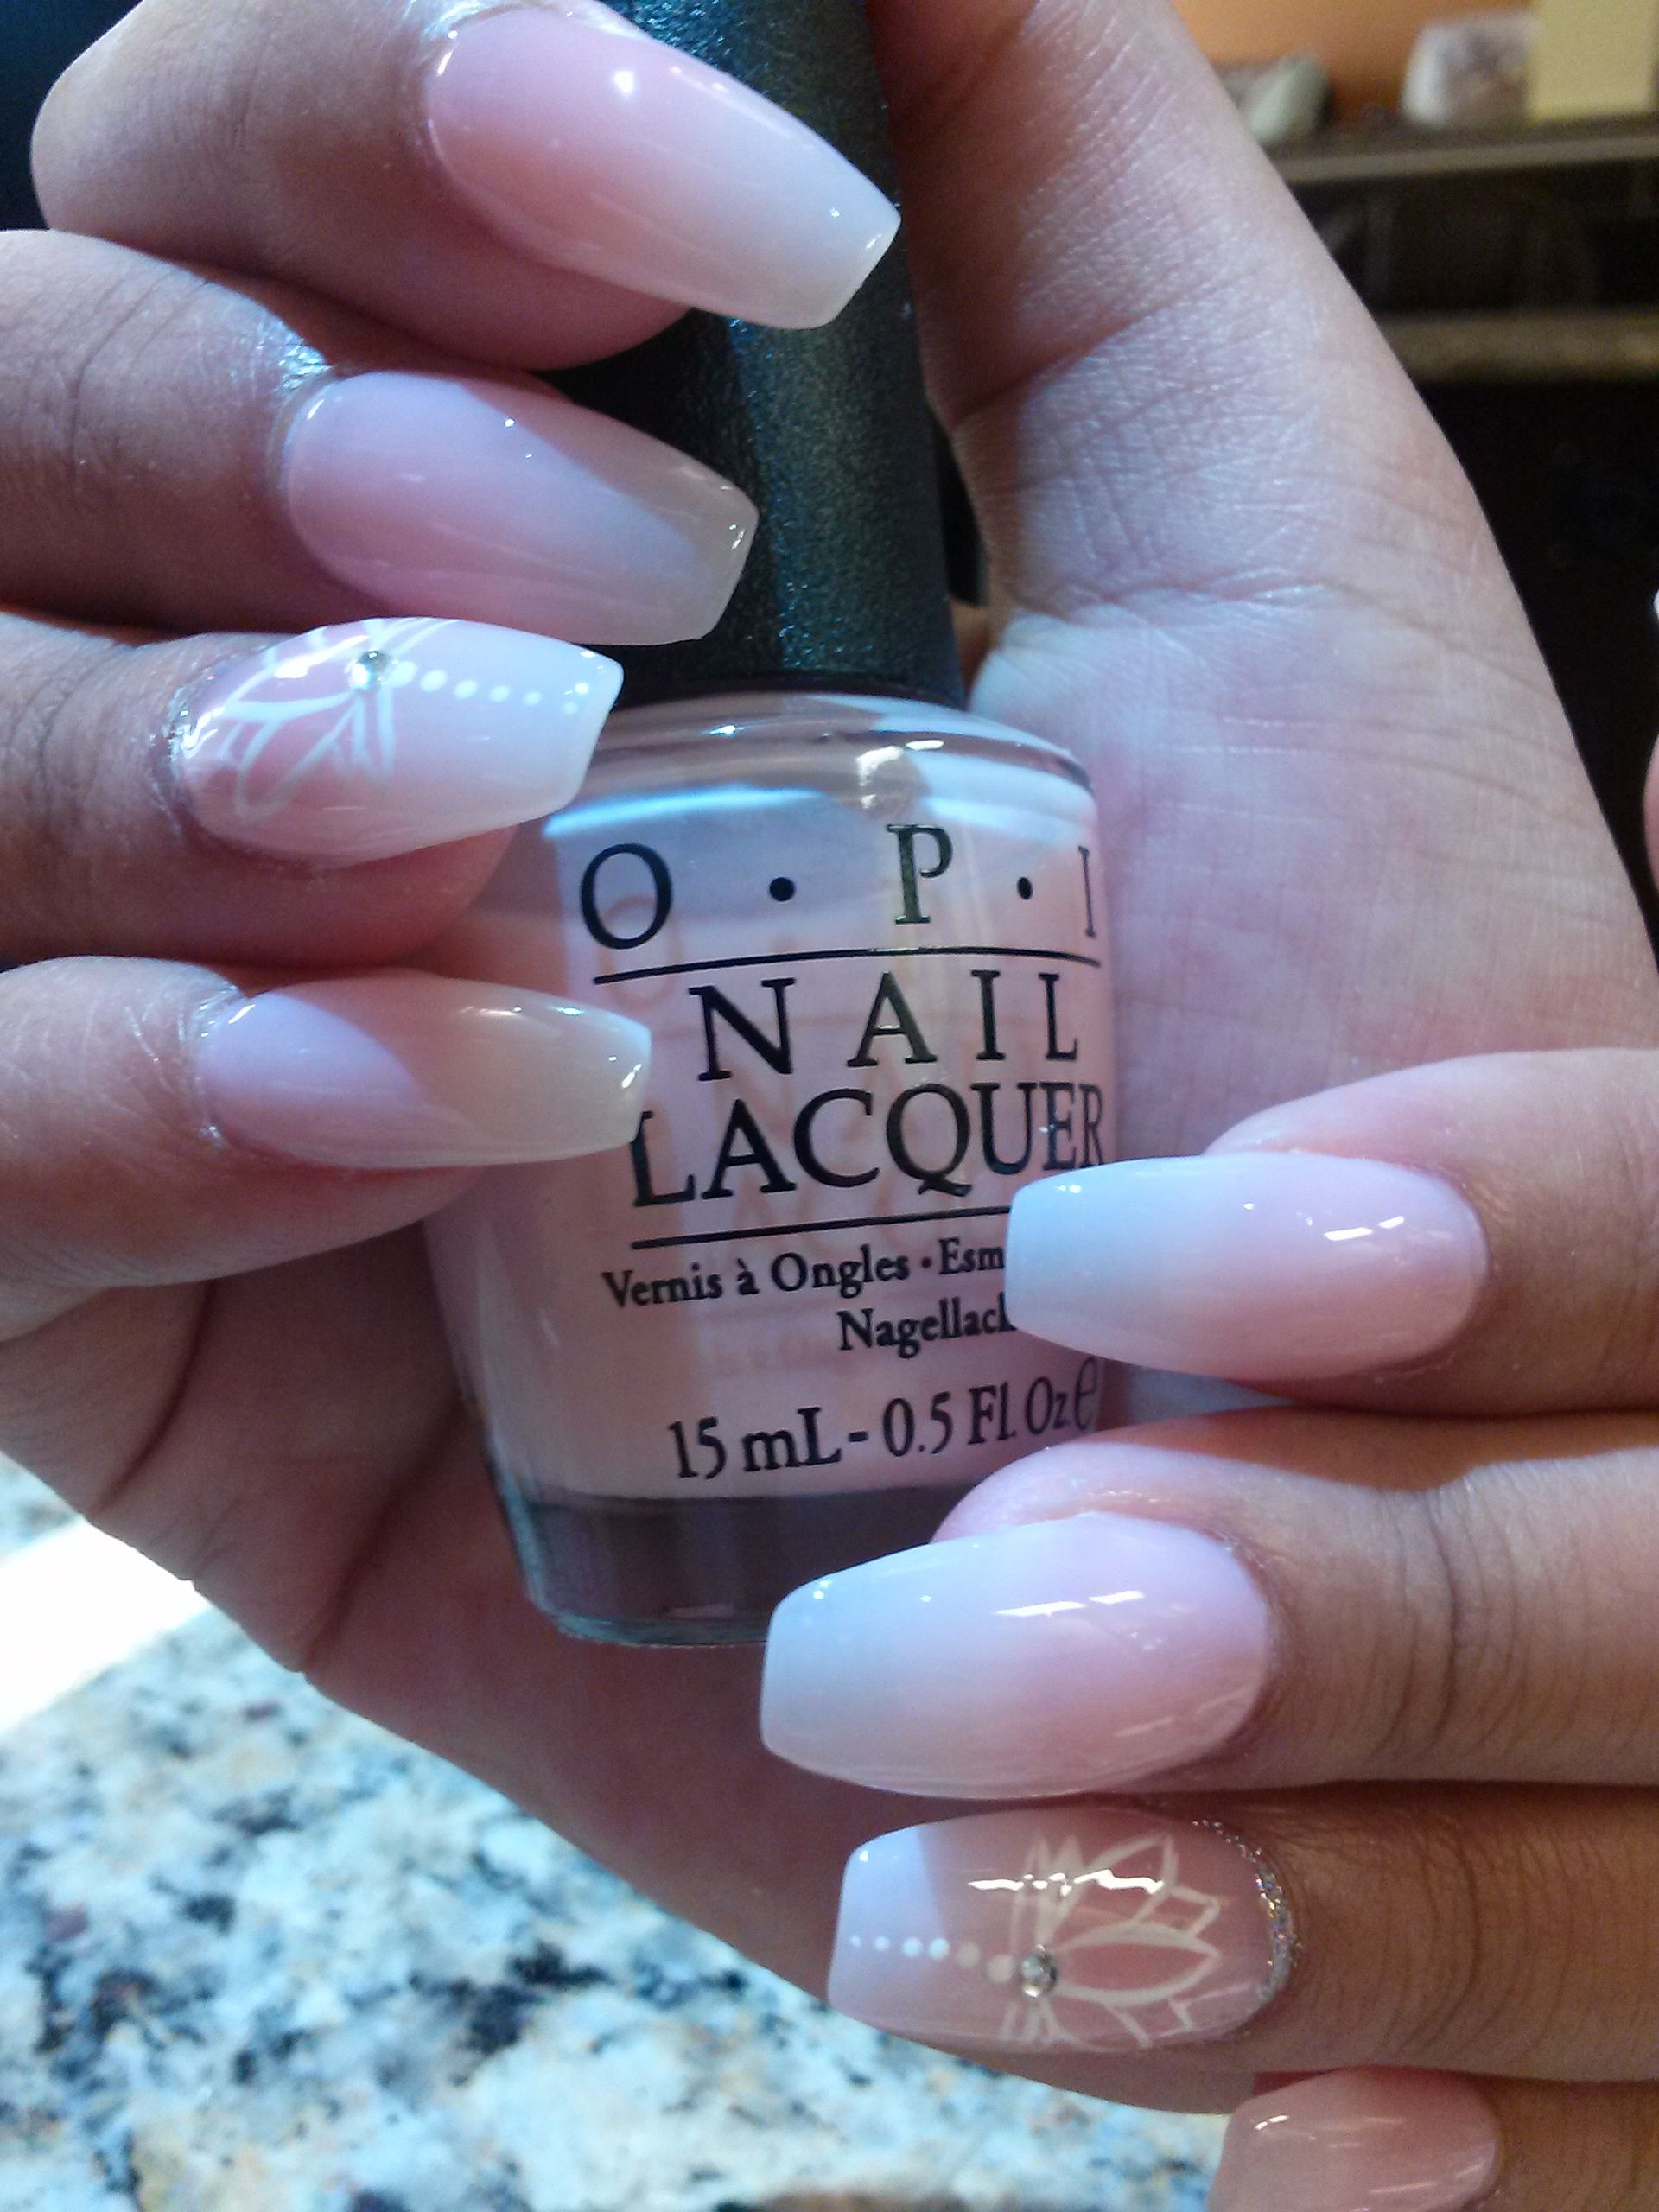 16. White Lotus: Coffin shaped acrylic nails with sheer nude polish ...